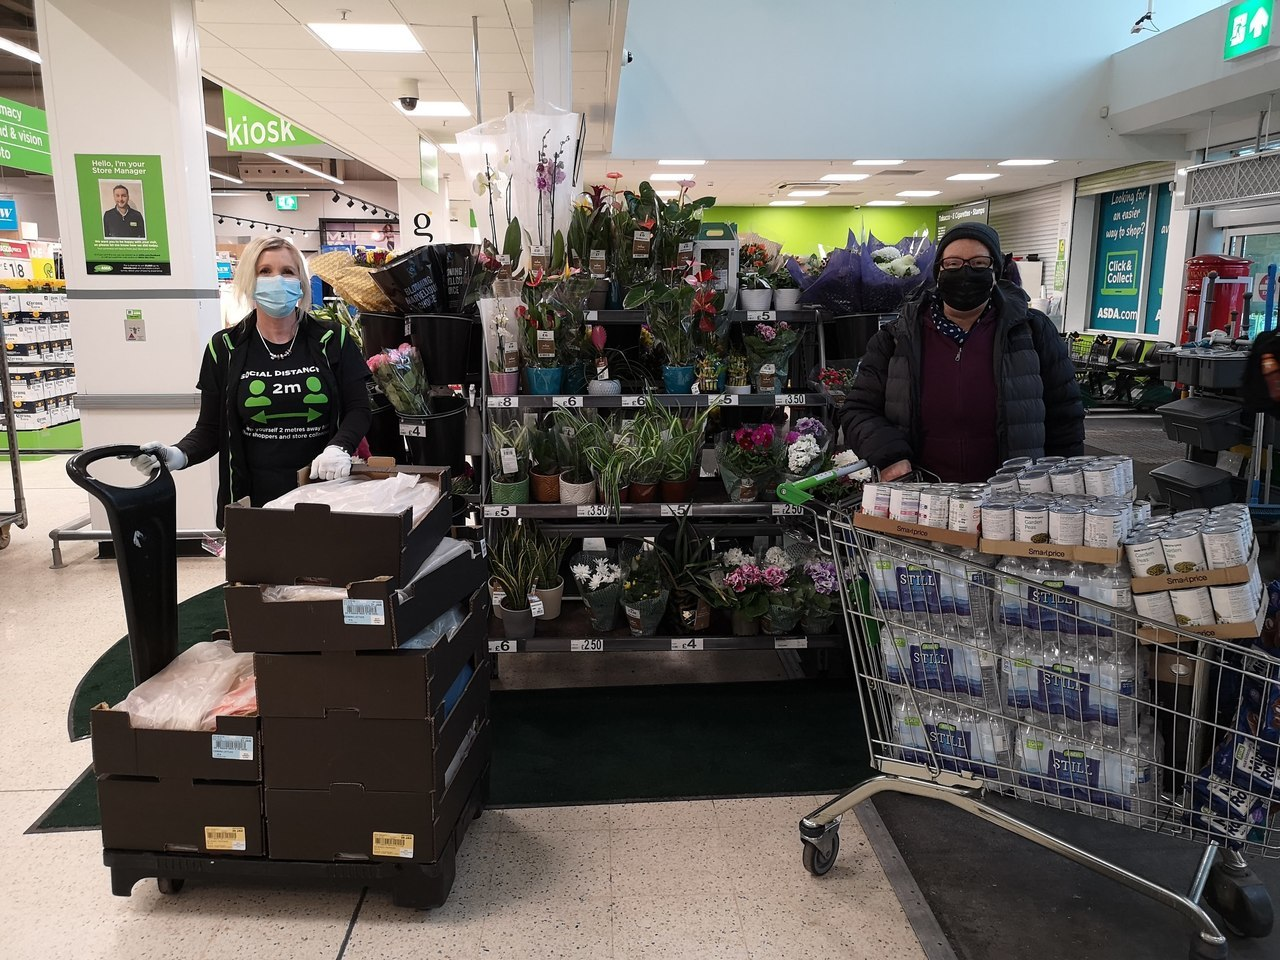 Helping WOW (Welcome on Wednesday) | Asda Long Eaton